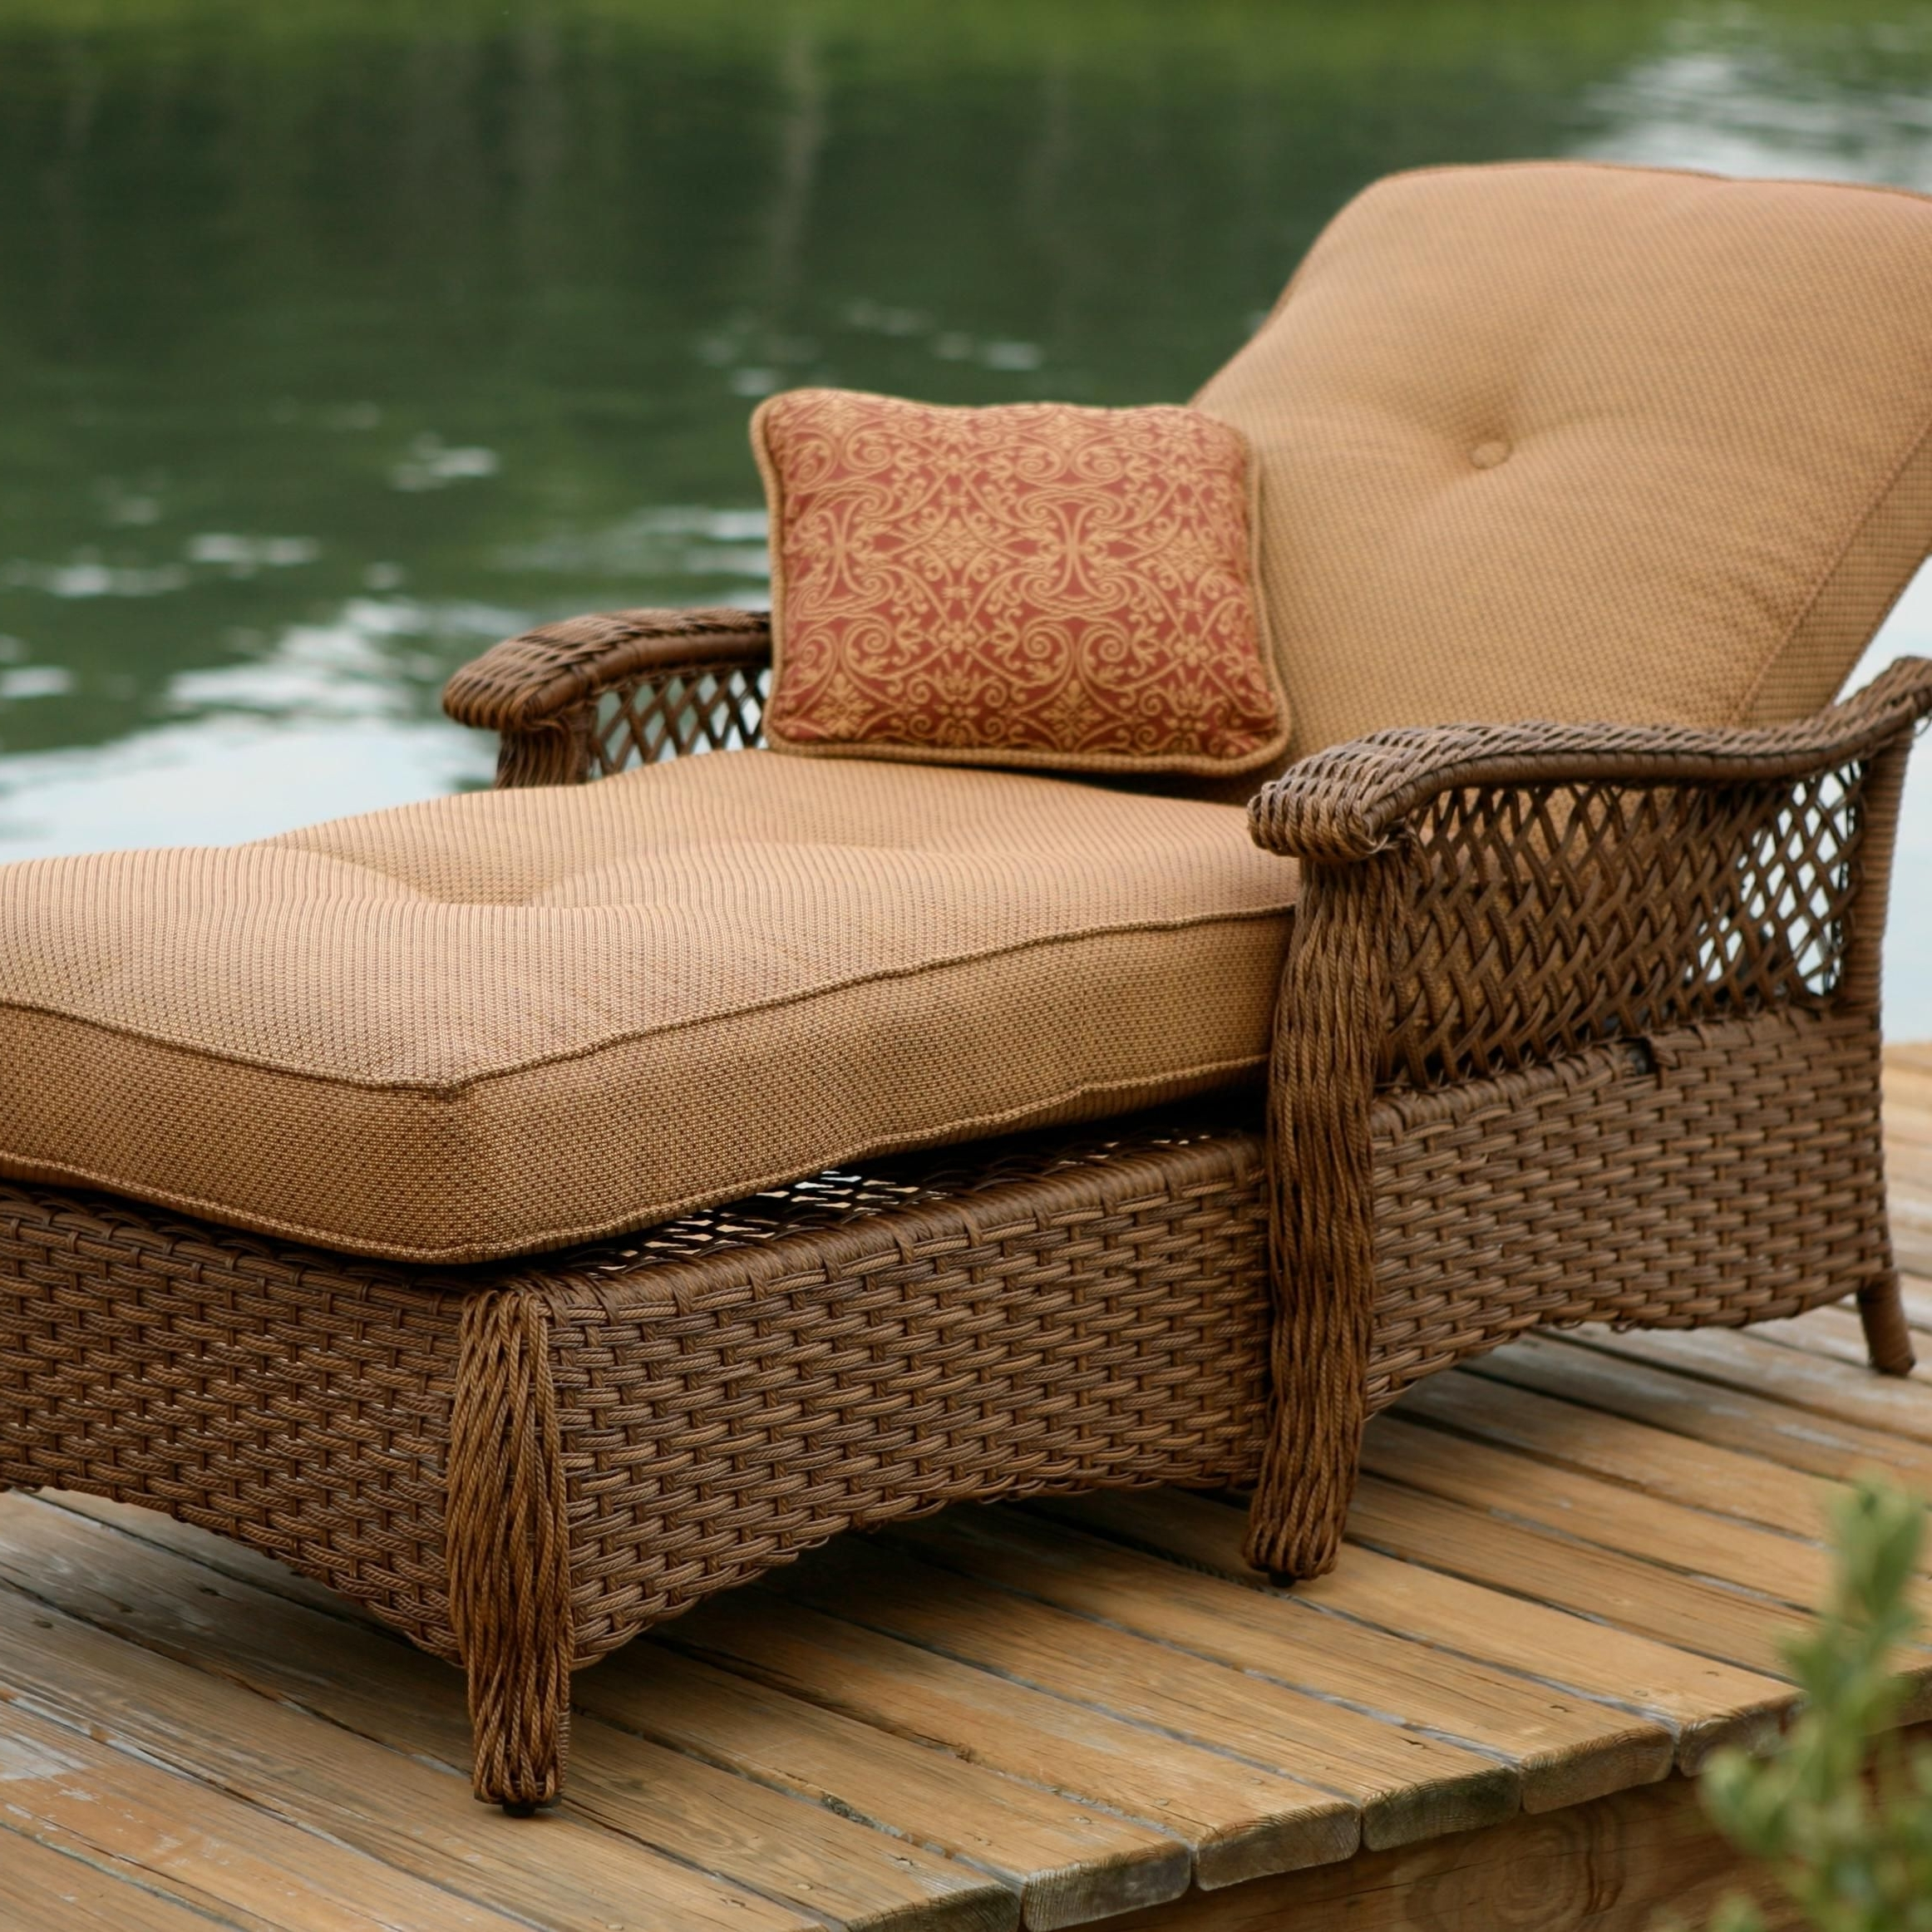 Outdoor Wicker Chaise Lounges Throughout Preferred Veranda–Agio Outdoor Woven Chaise Loungeagio (View 12 of 15)